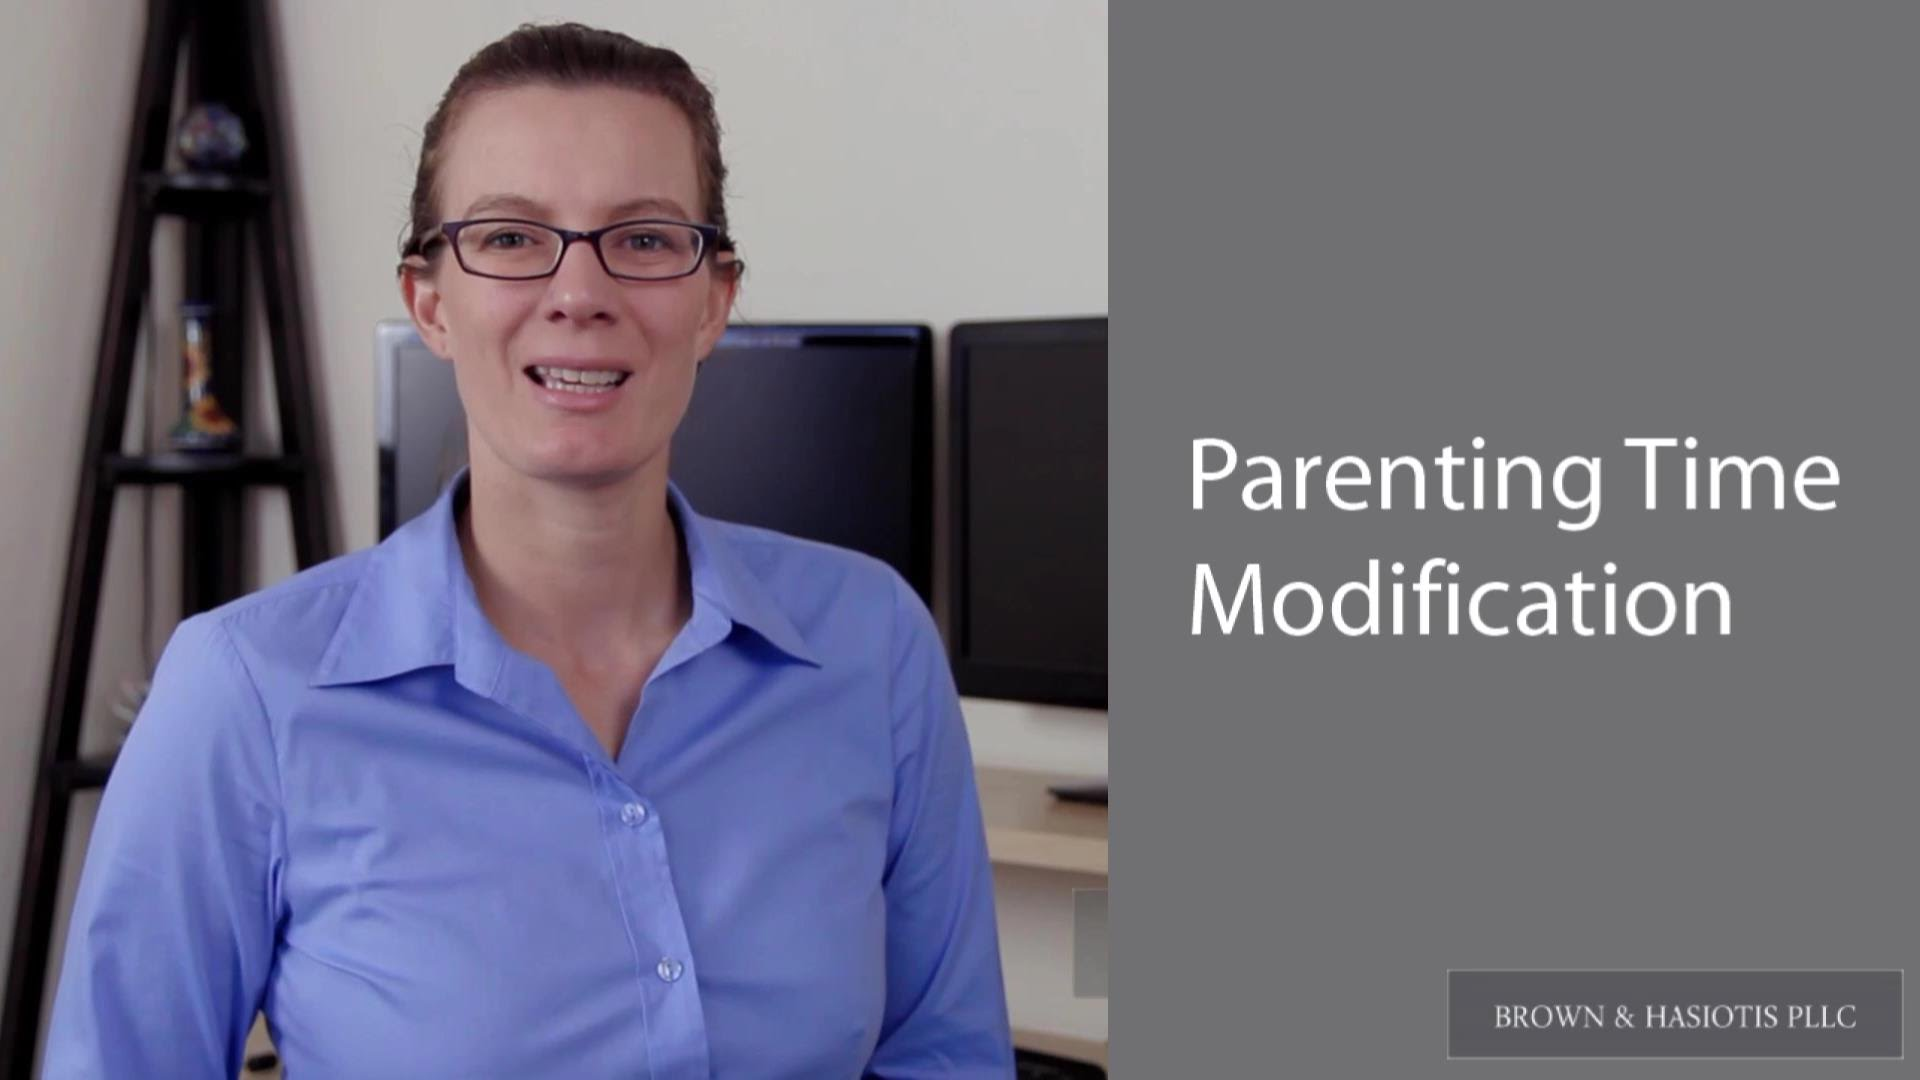 Brown-Hasiotis-PLLC-Parenting-Time-Modifications